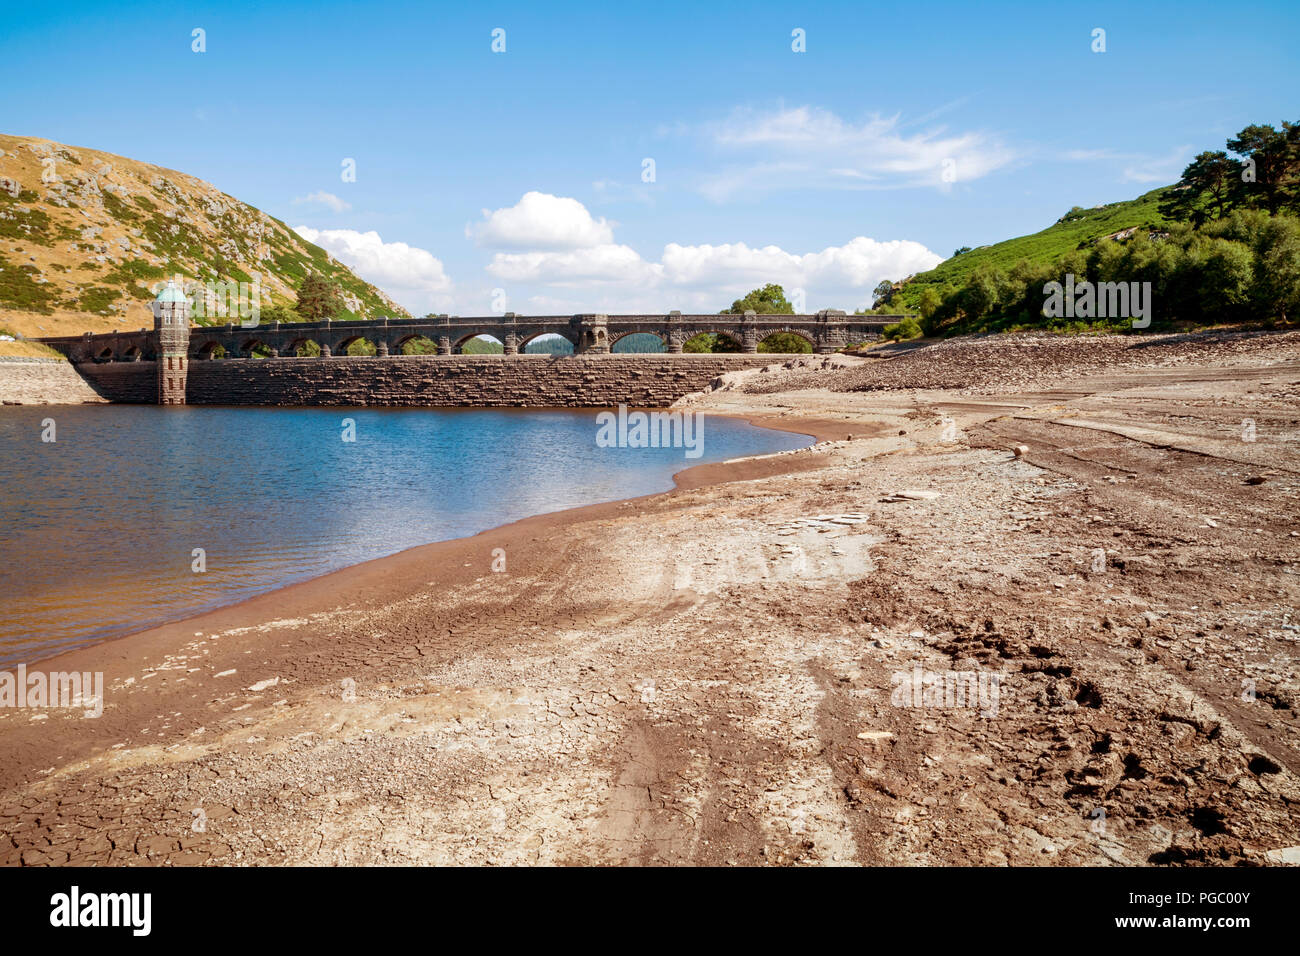 Extremely low water levels revealing the shoreline due to the current hot weather in the UK, Normally water would be overflowing the arches generating - Stock Image